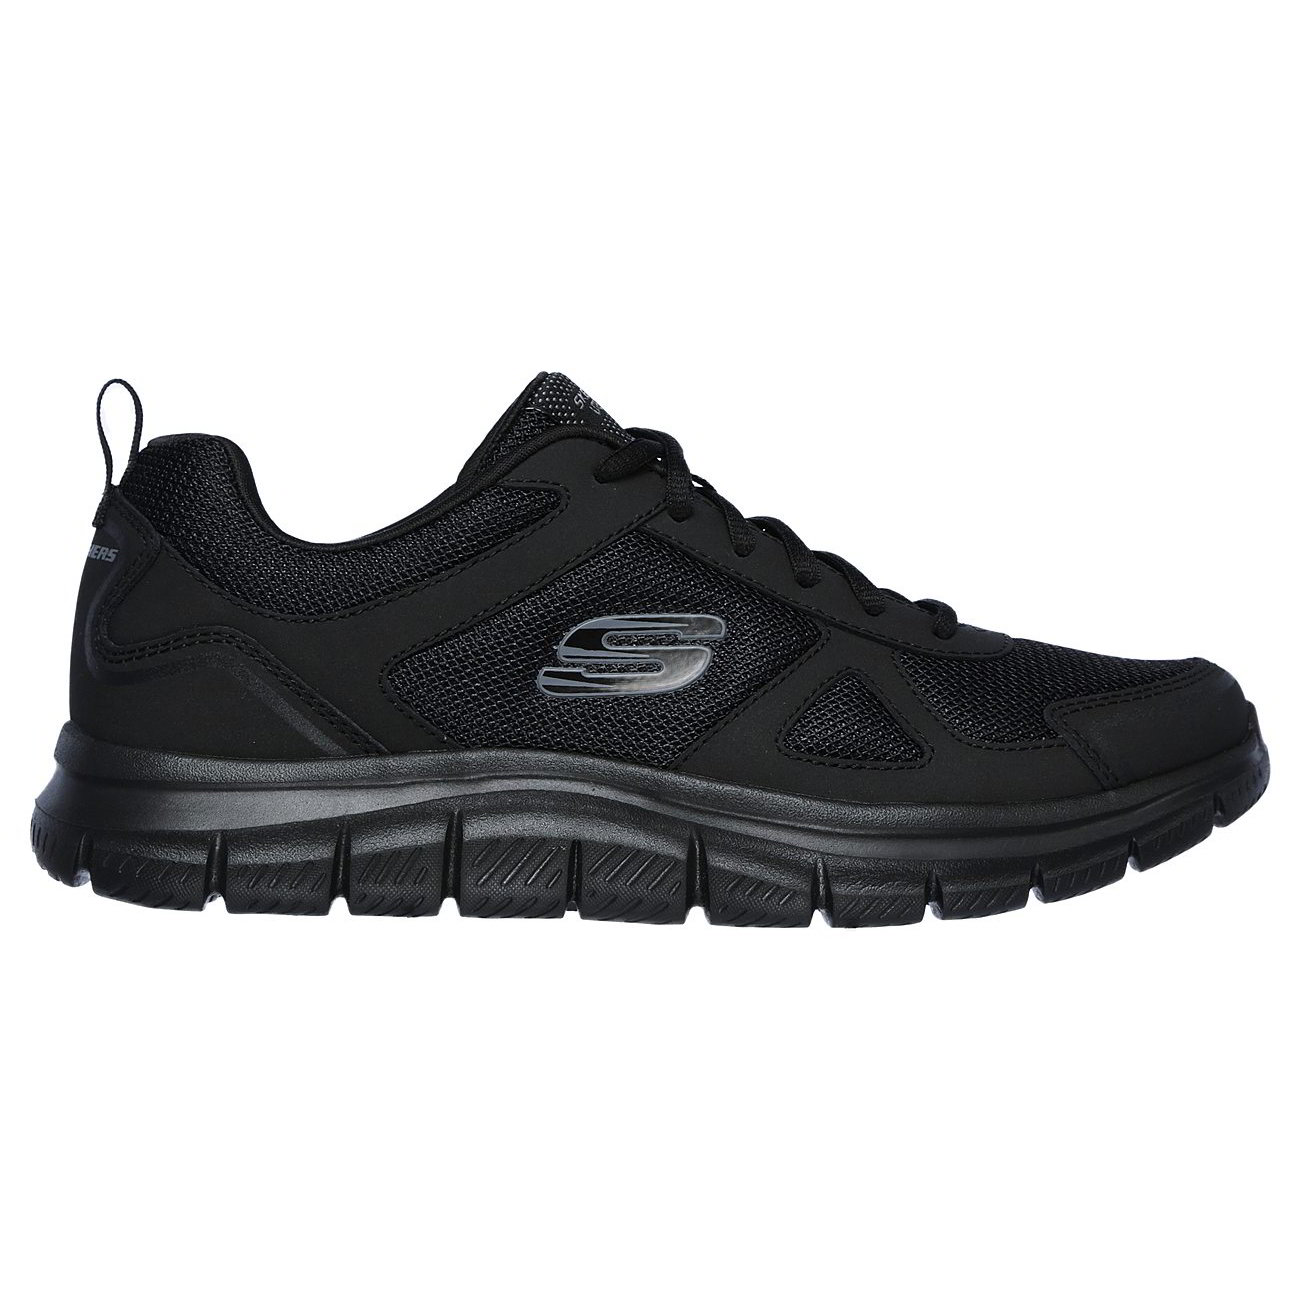 Mens Black Lace Up Trainers Shoes